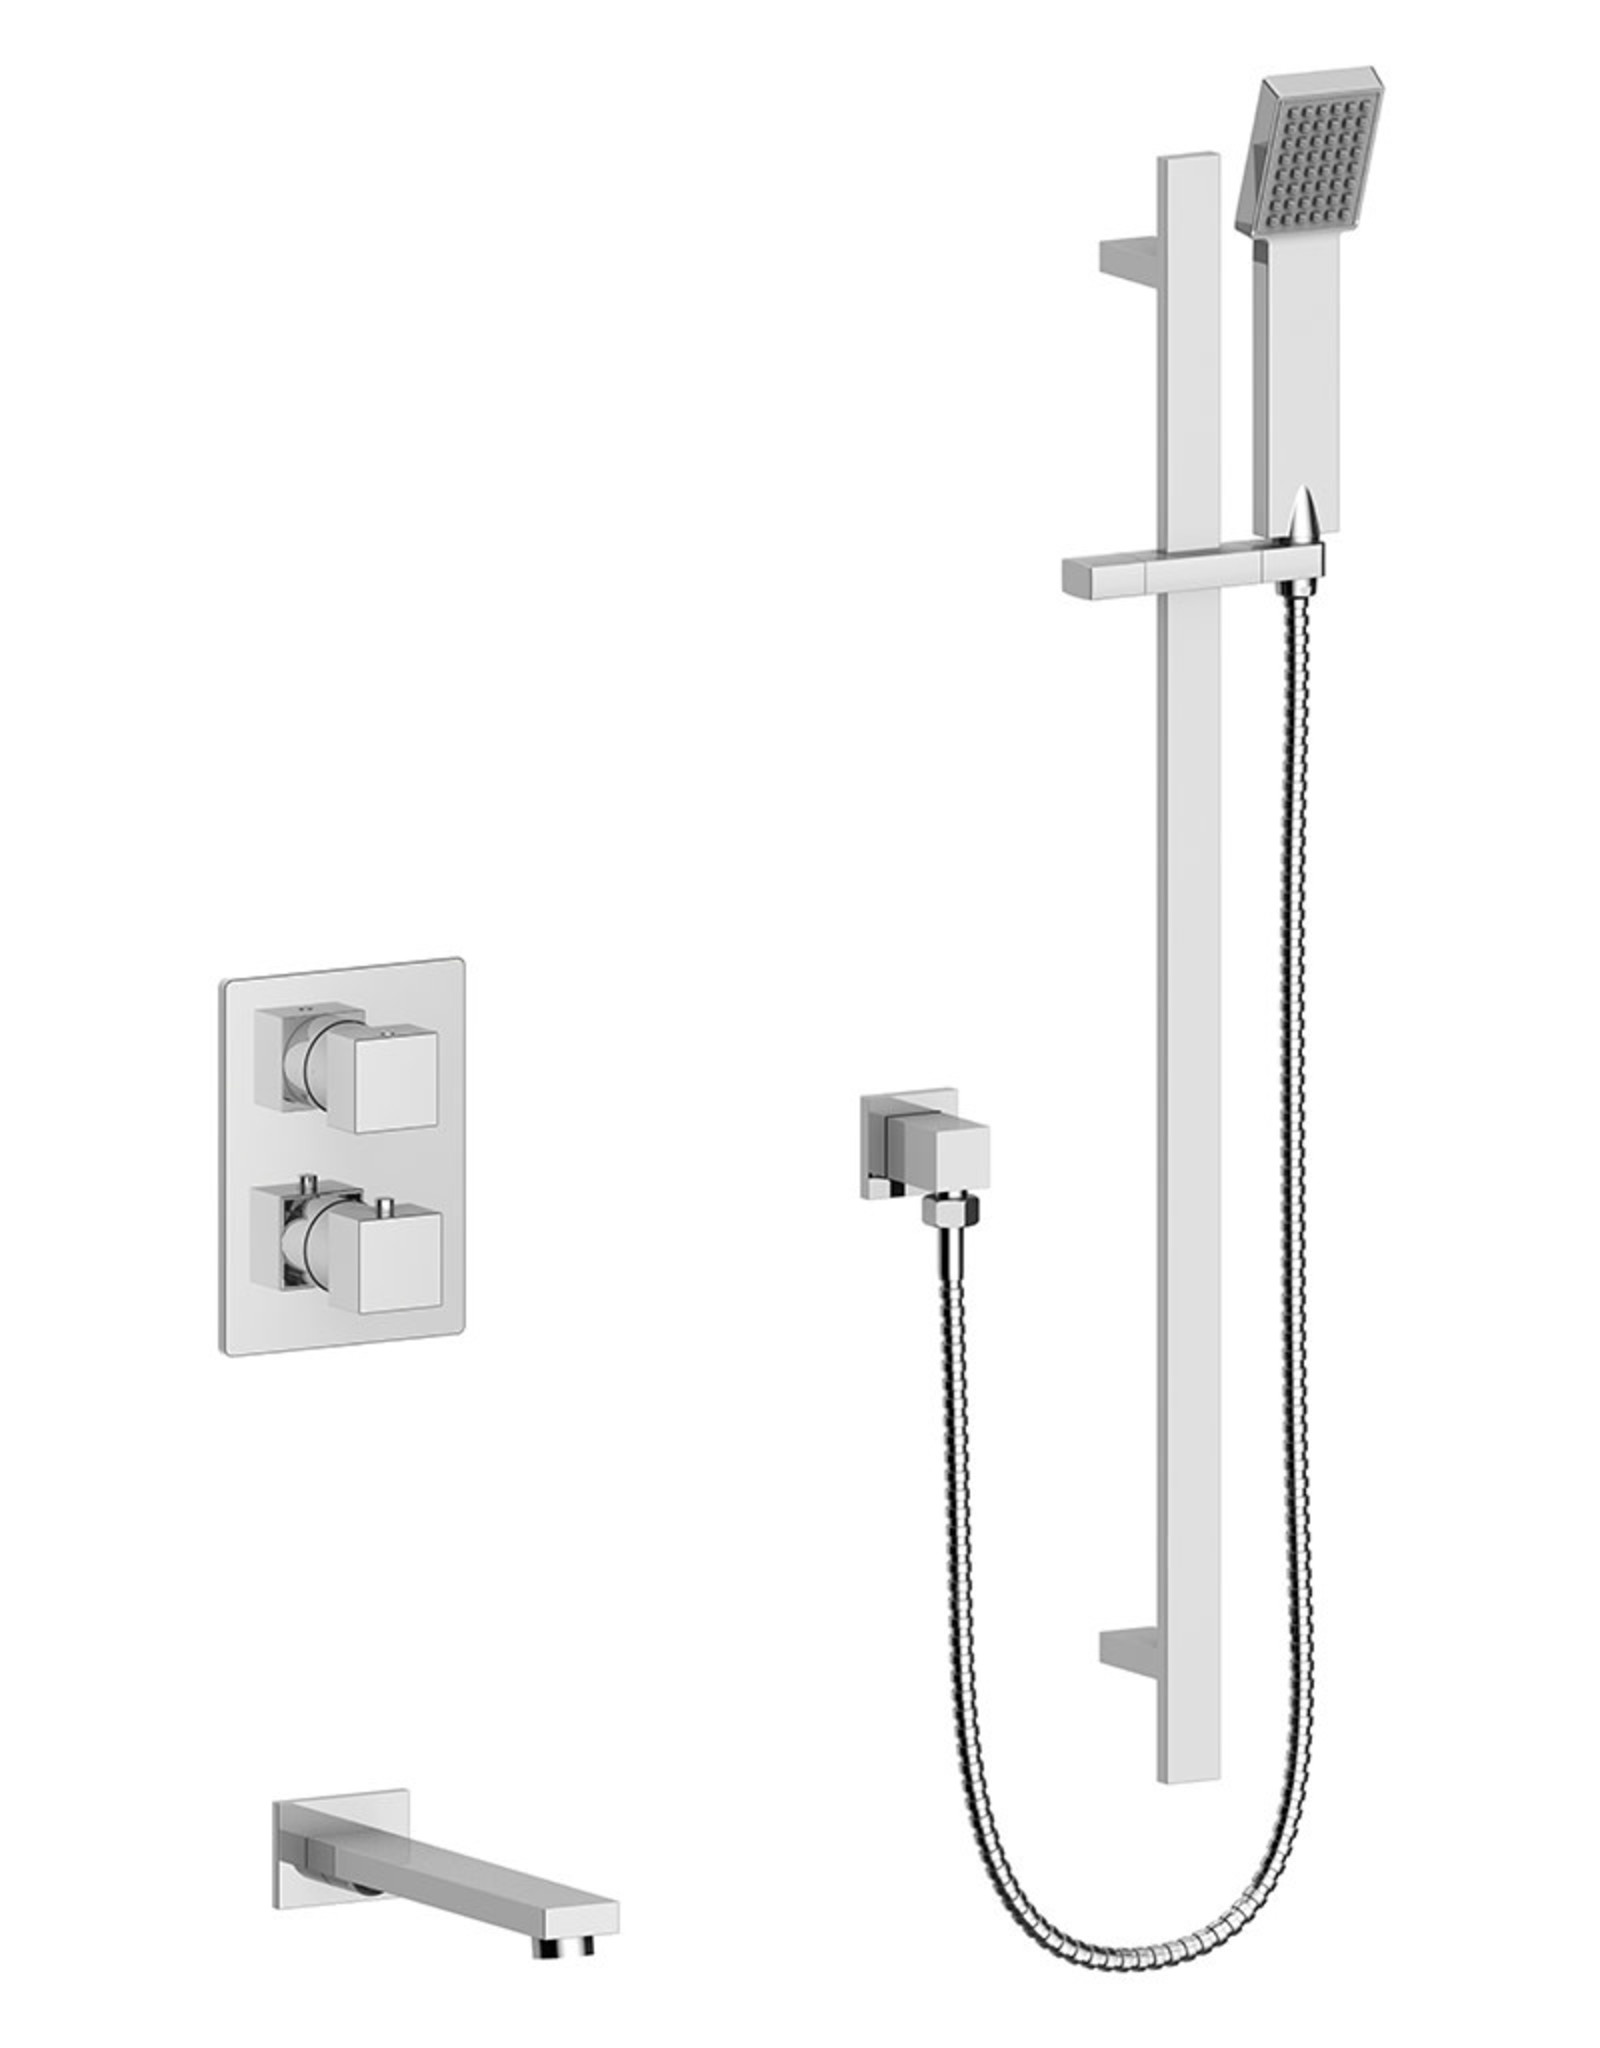 Vogt Kapfenberg- 2-Way Thermostatic Shower Kit- Handheld With Tub Spout- Chrome